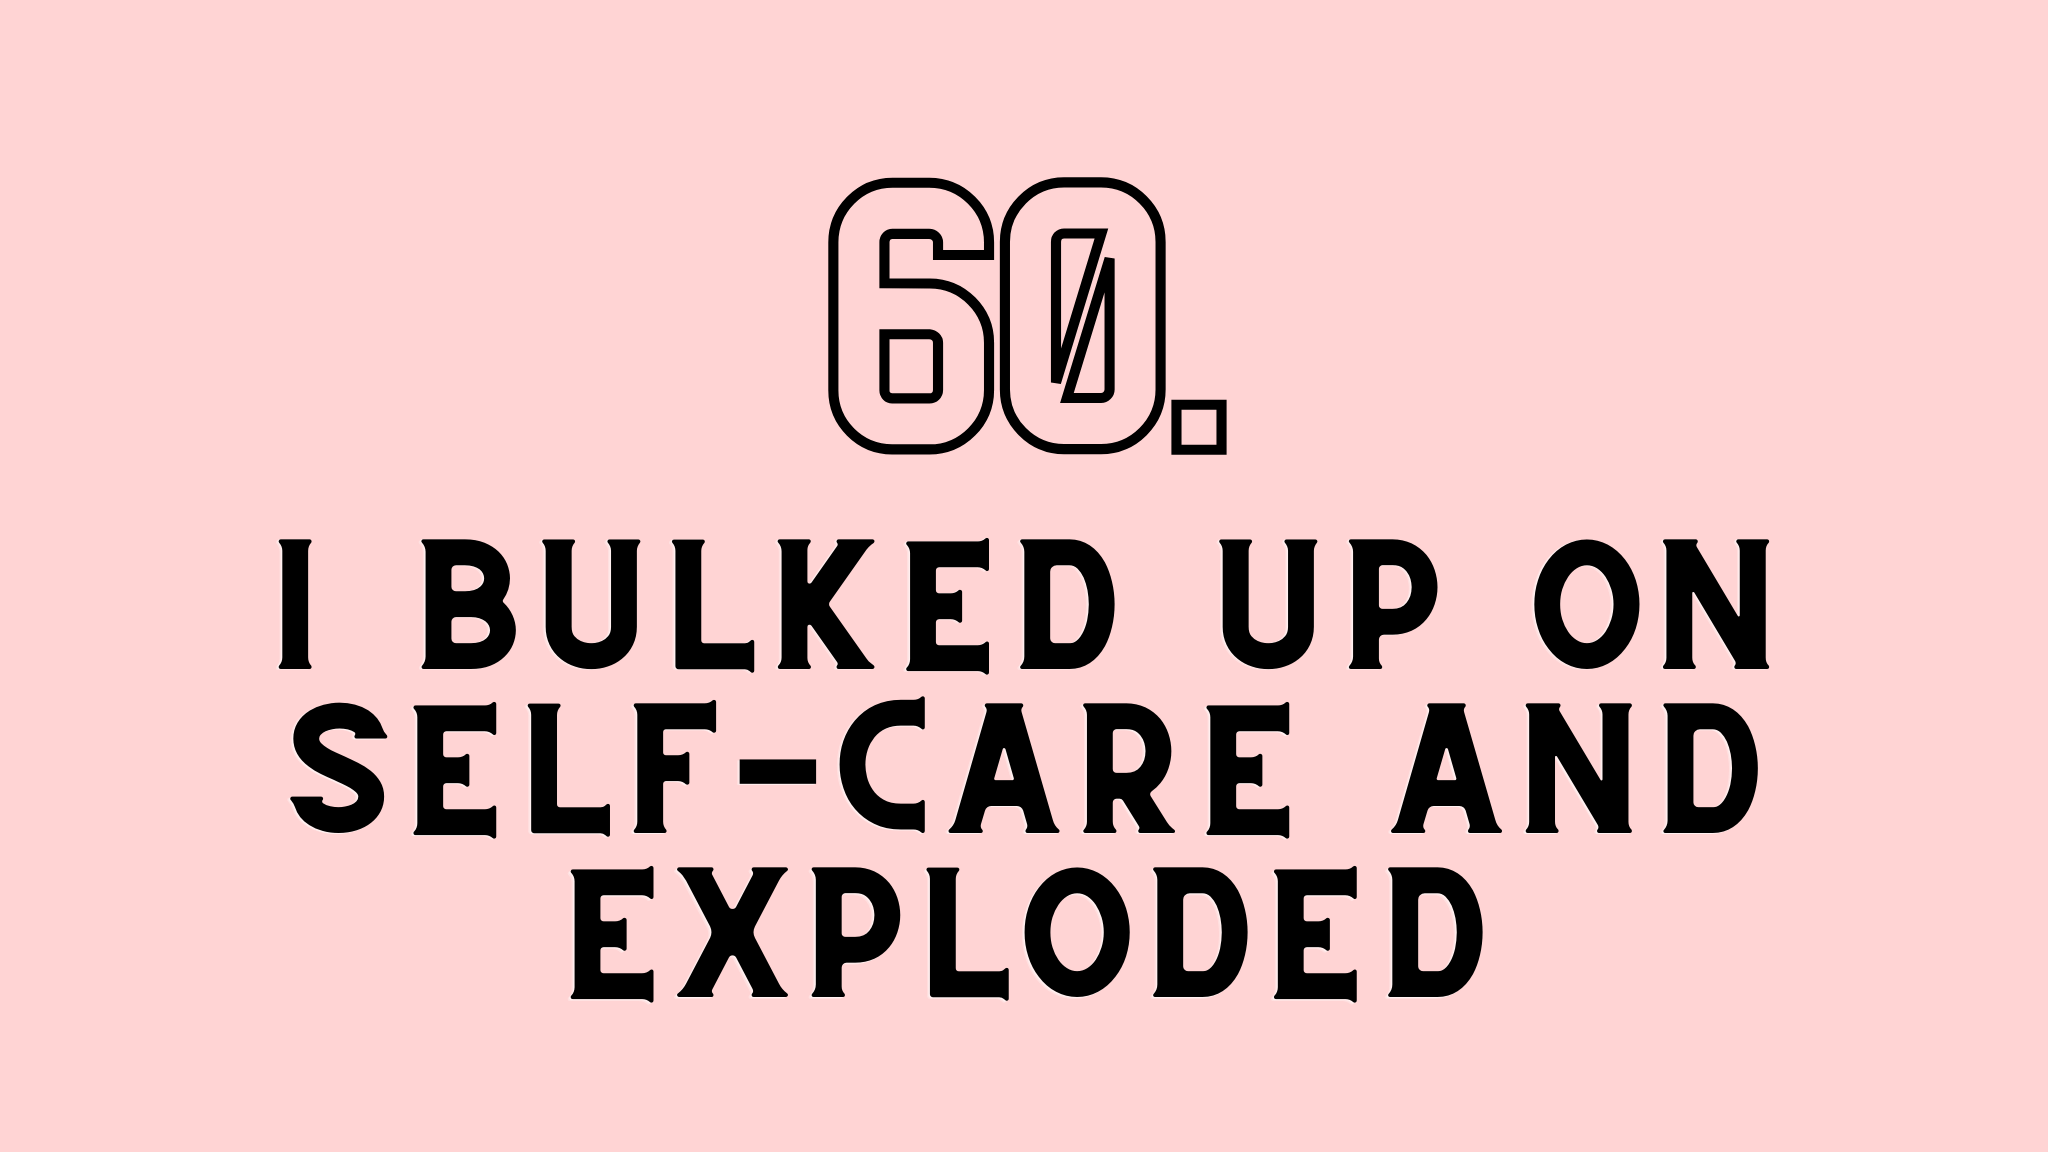 bulked up on self-care